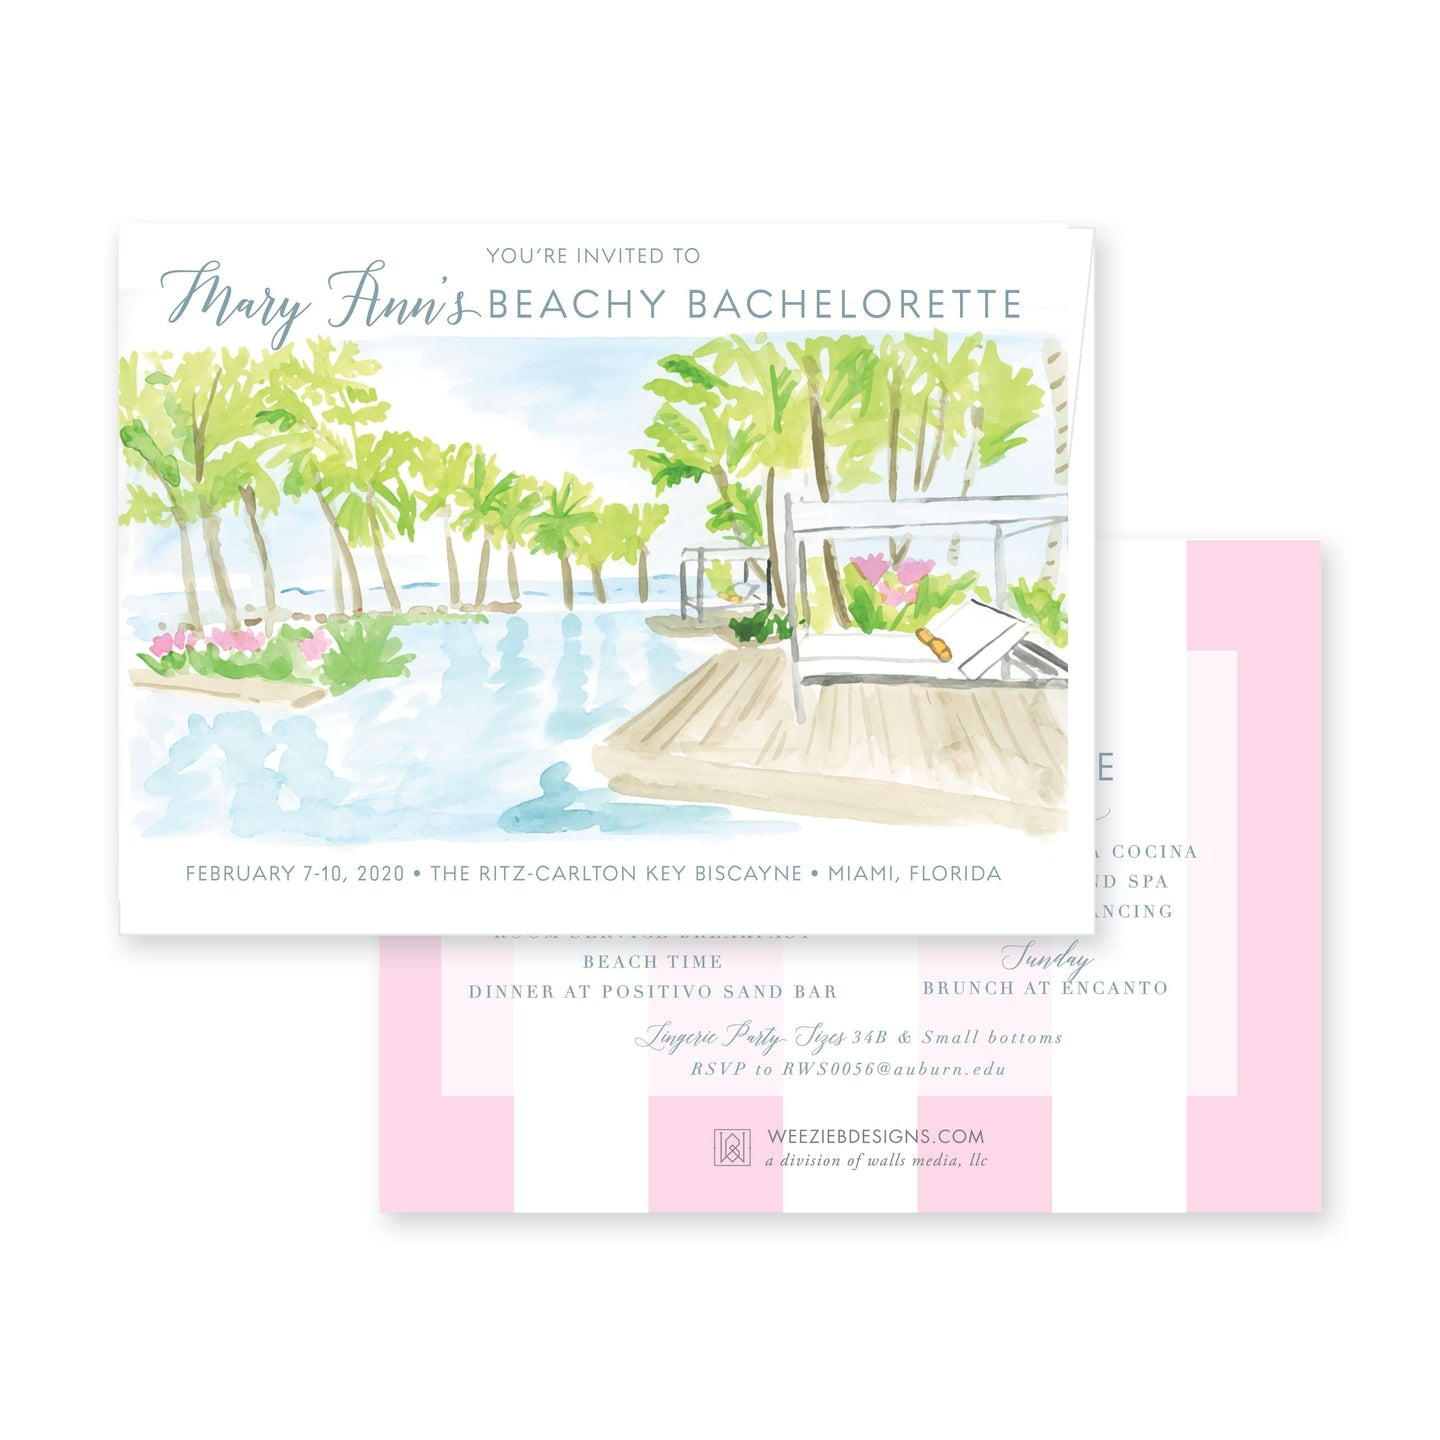 Weezie B. Designs | Bachelorette Invitation | South Beachy Bach